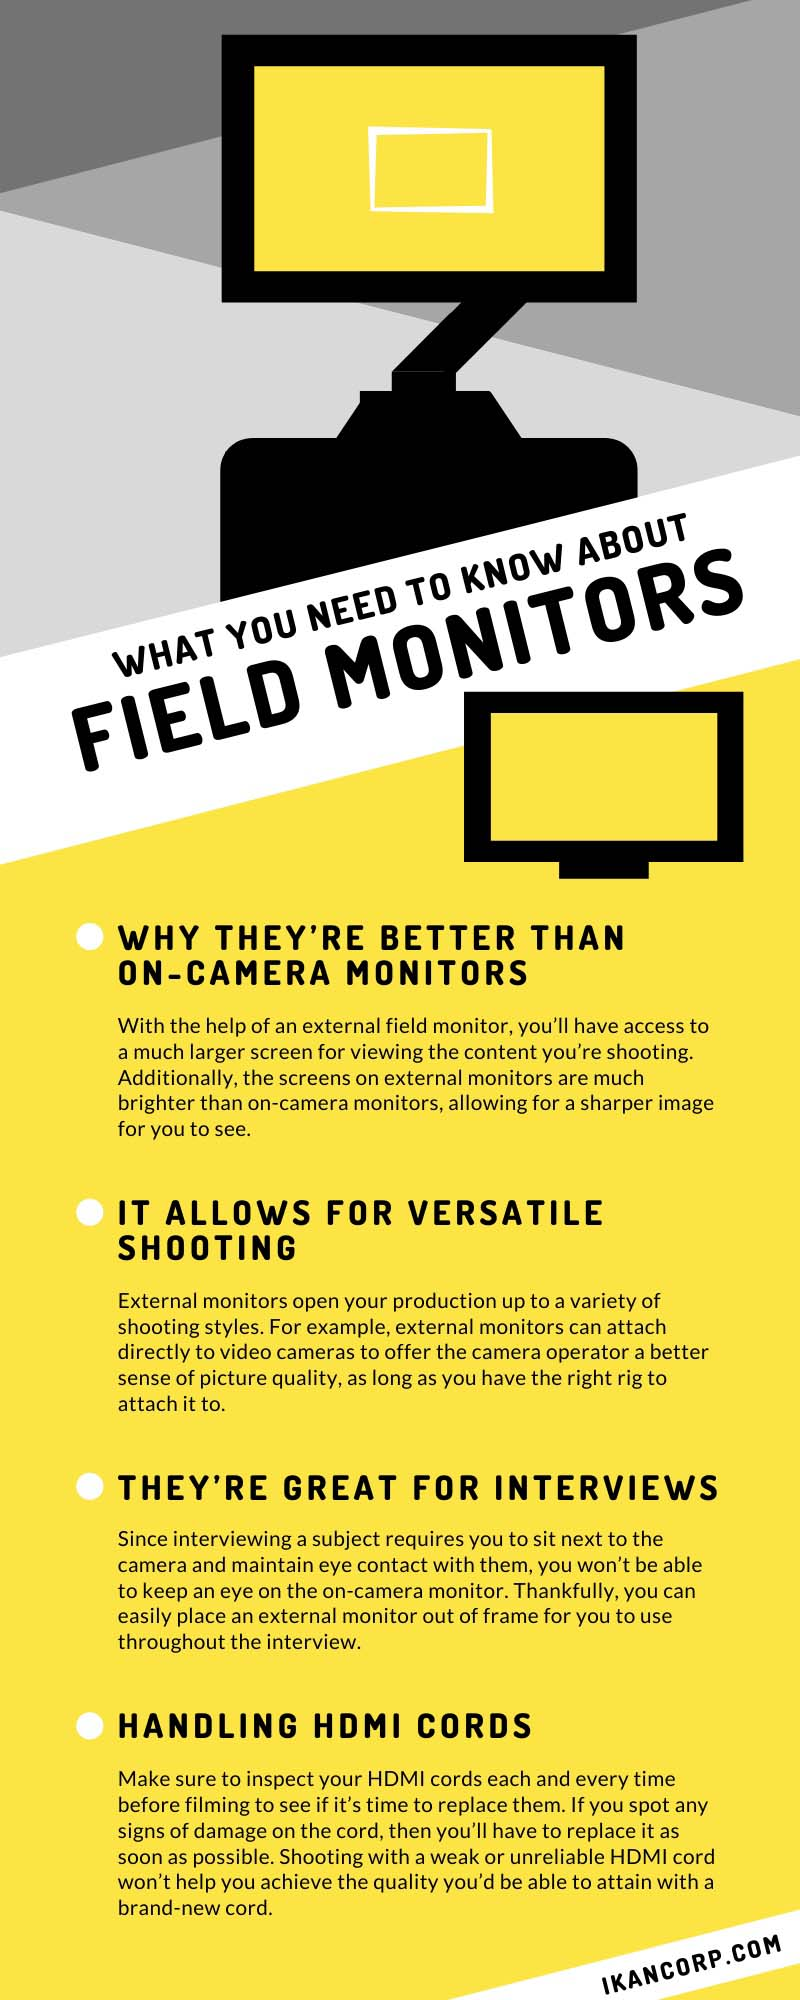 Field Monitors